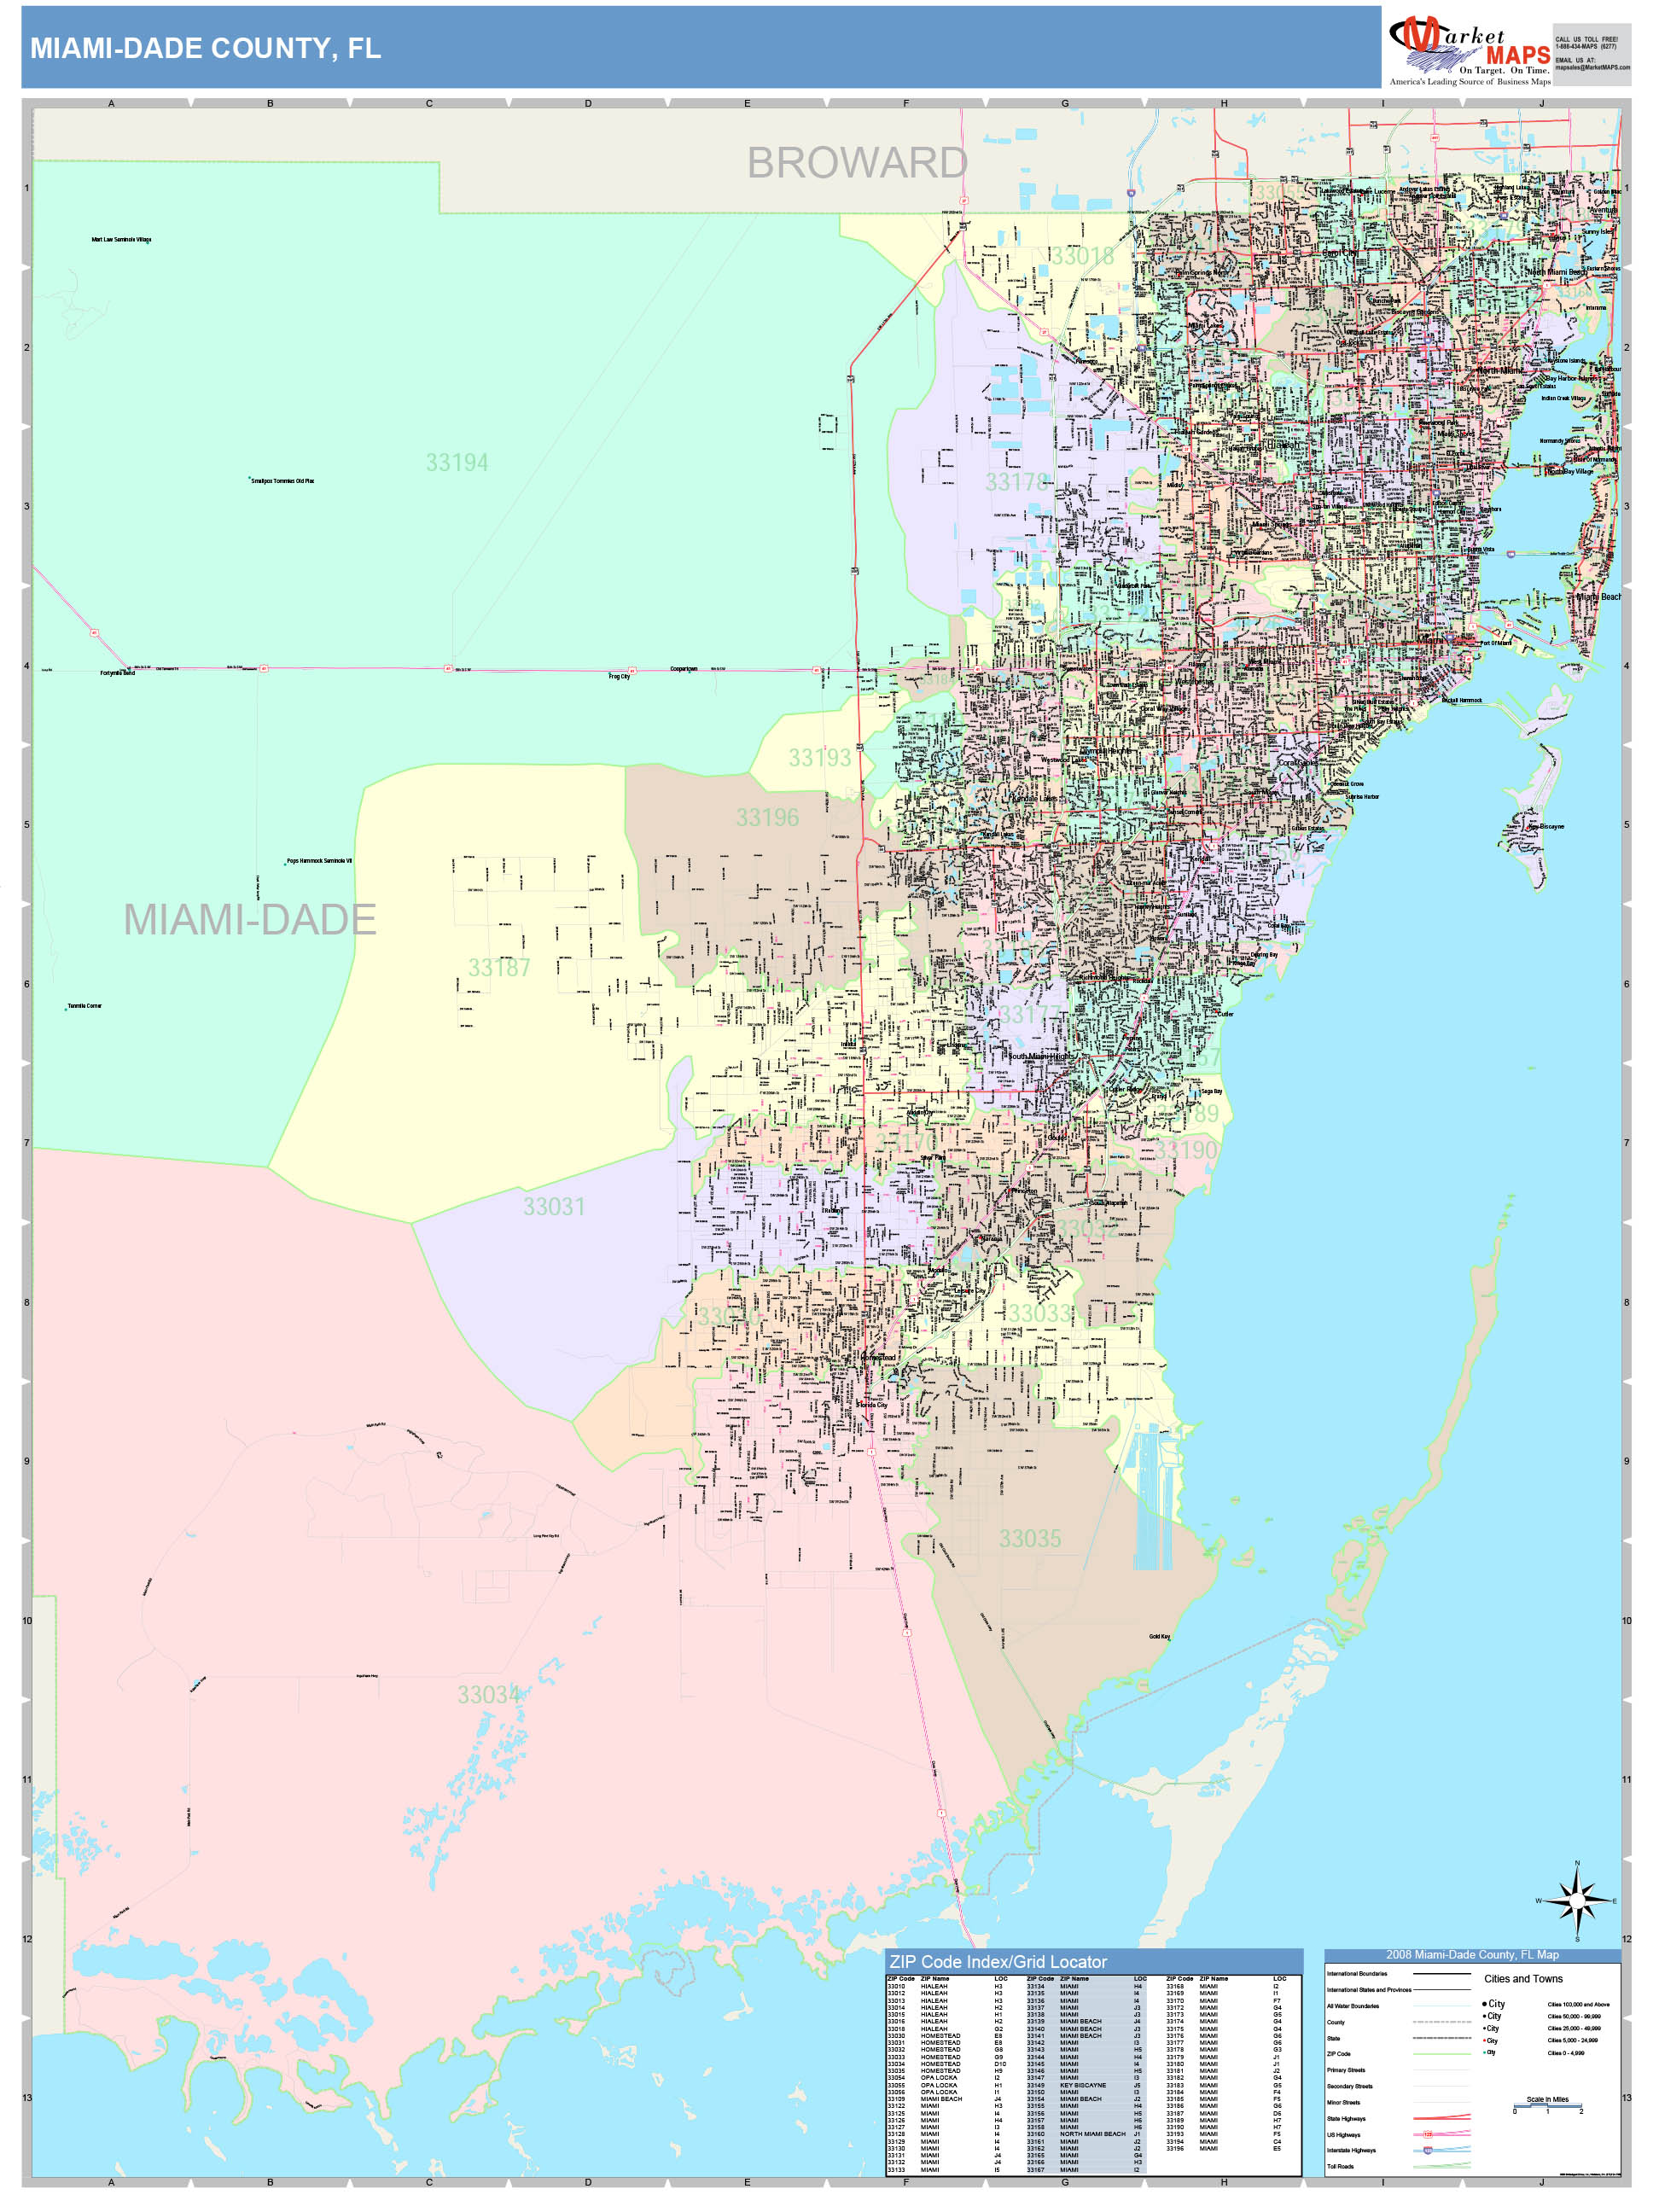 miami-dade county, fl wall map color cast stylemarketmaps